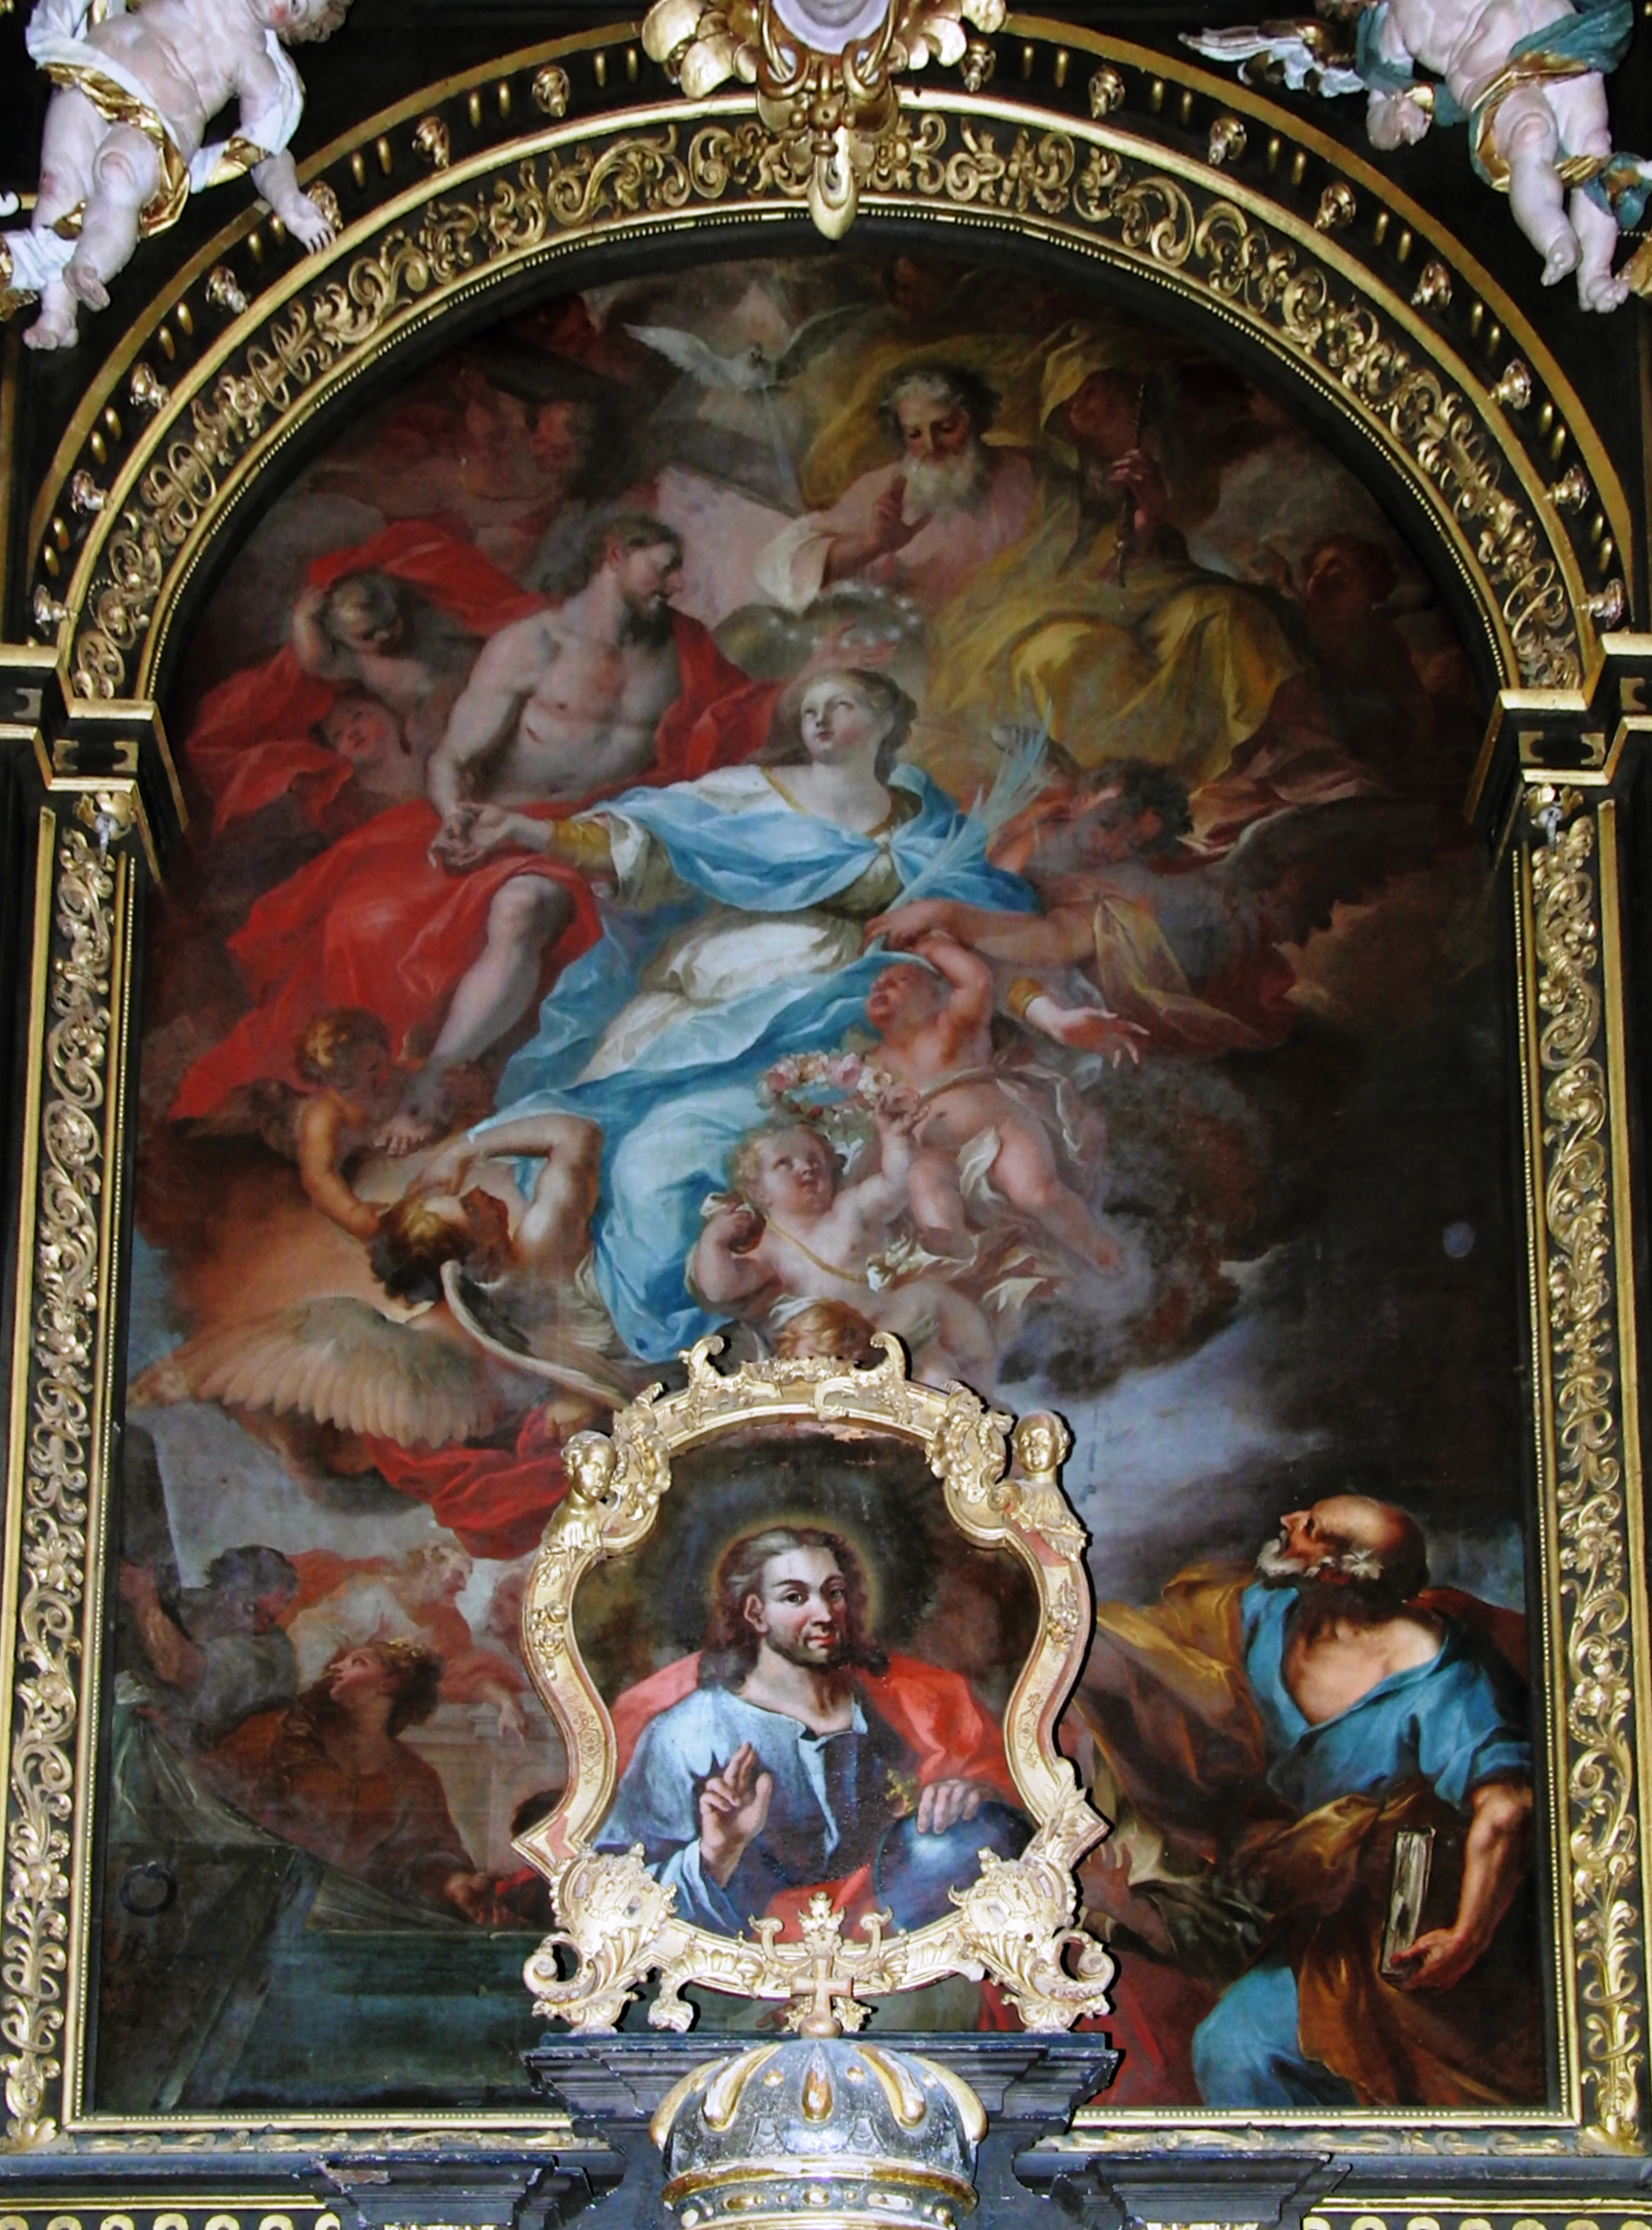 https://upload.wikimedia.org/wikipedia/commons/7/74/Leinwandbild_Hochaltar_St_Maria_Buxheim_ArM.jpg